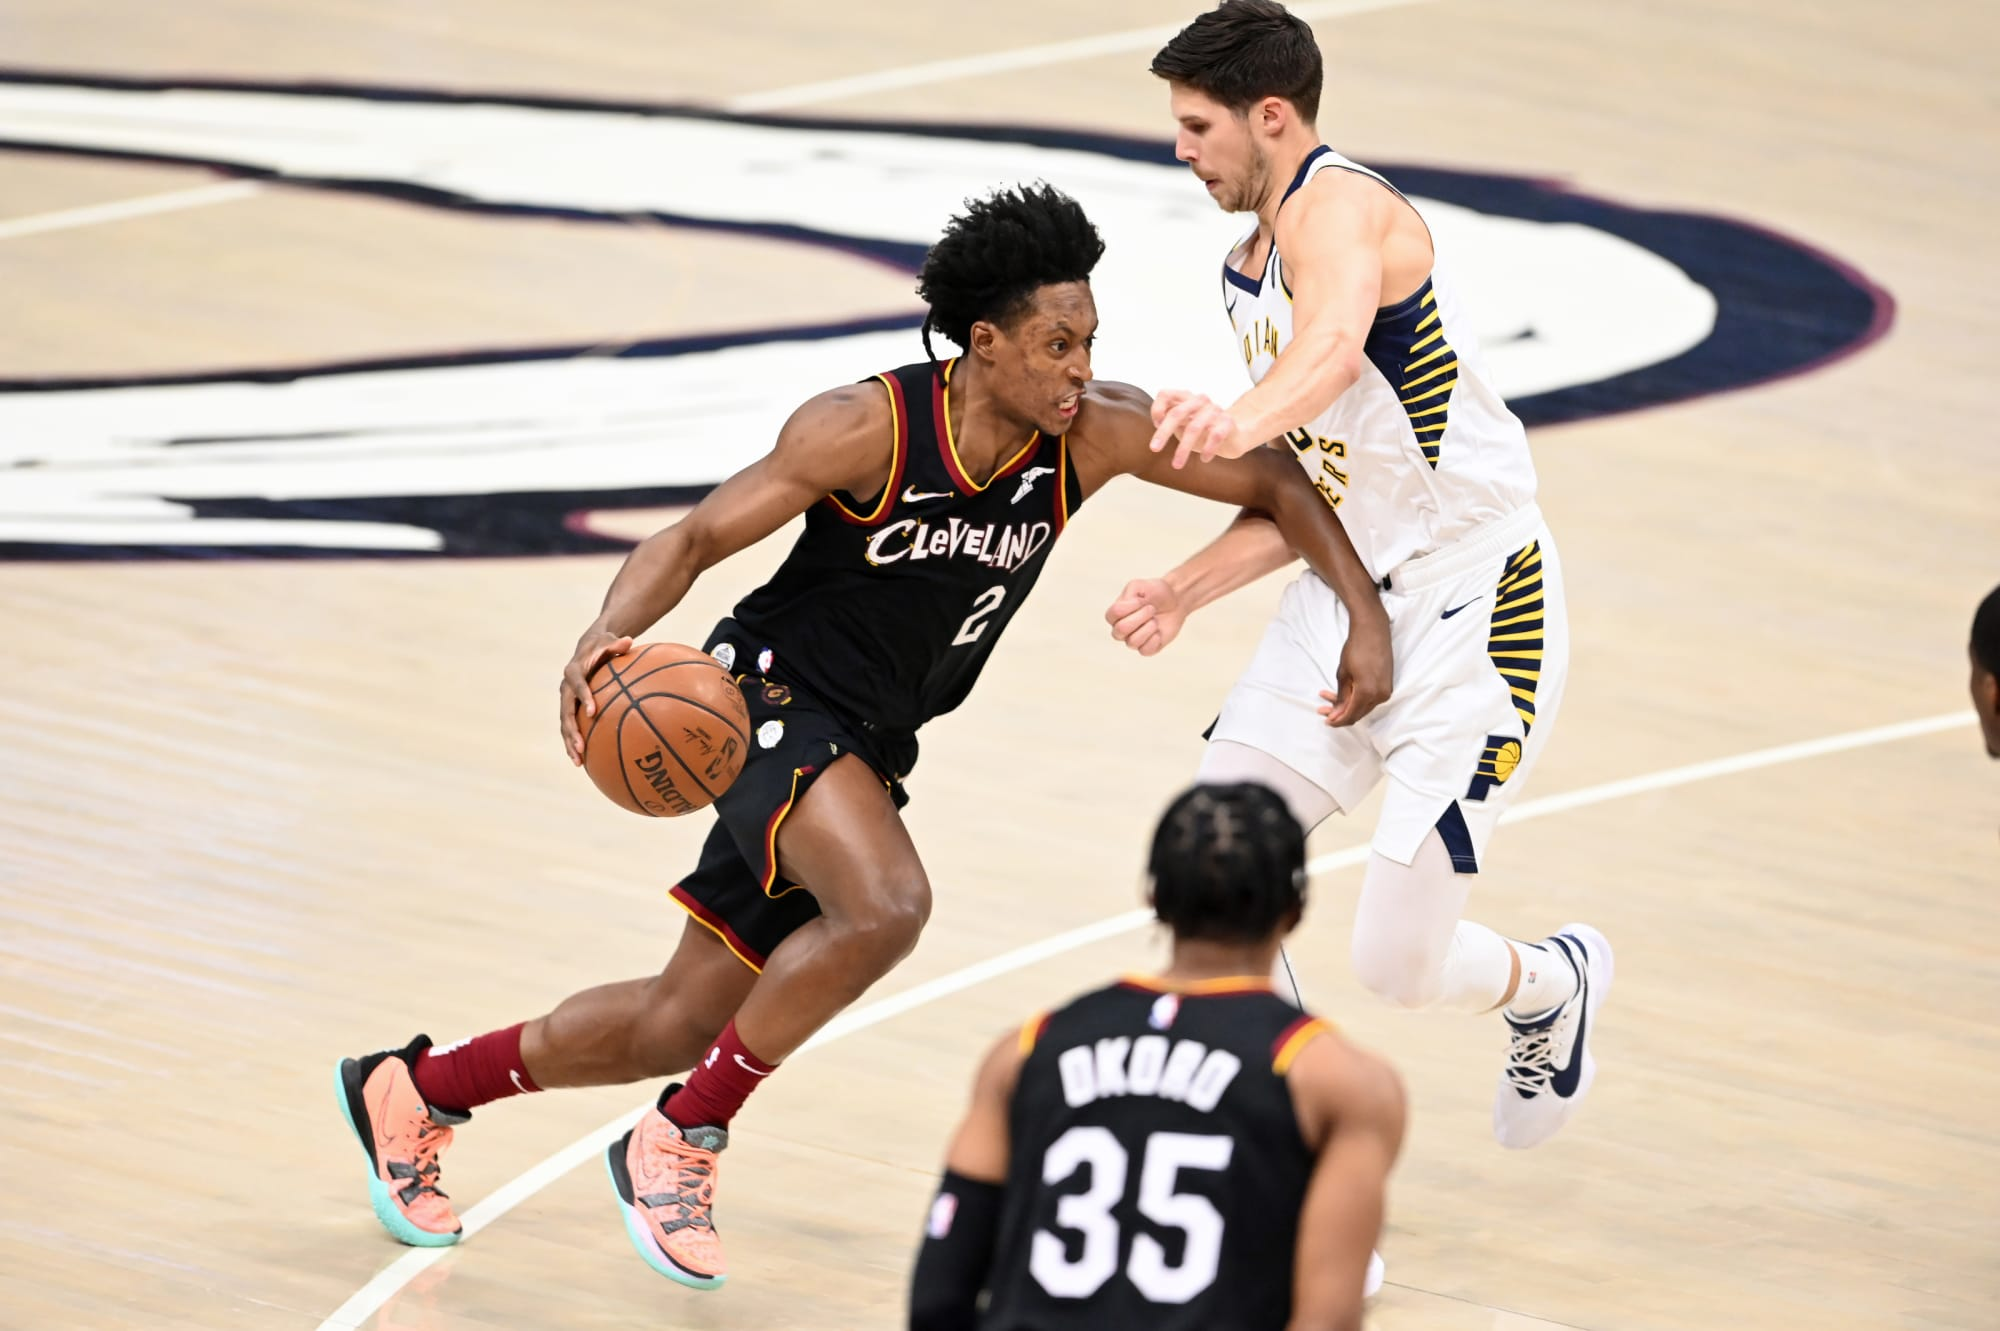 Cavs Top 3: Collin Sexton goes ice cold in second half against Pacers